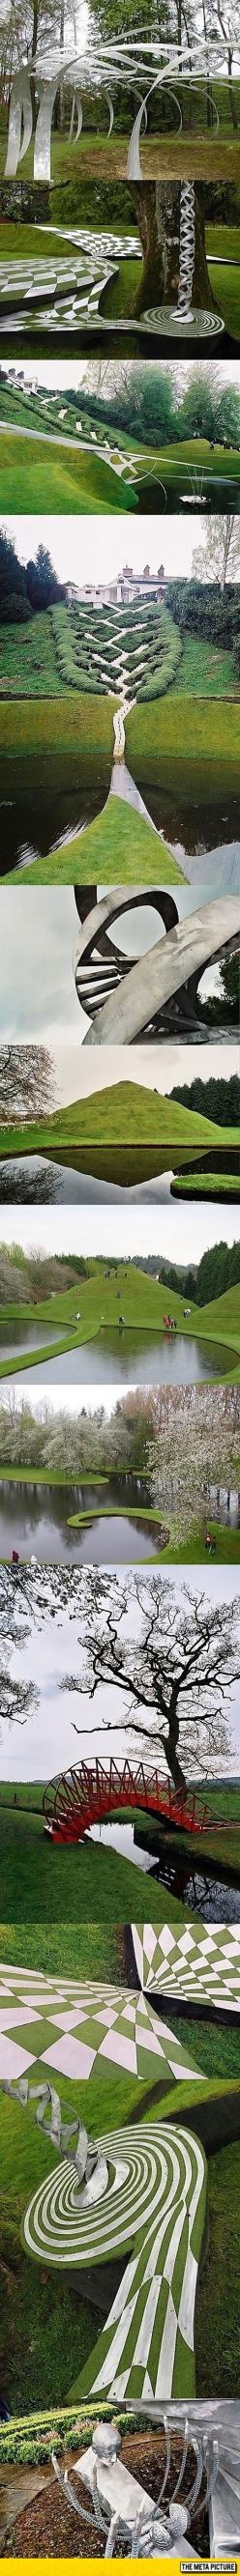 This Is The Garden Of Cosmic Speculation In Scotland